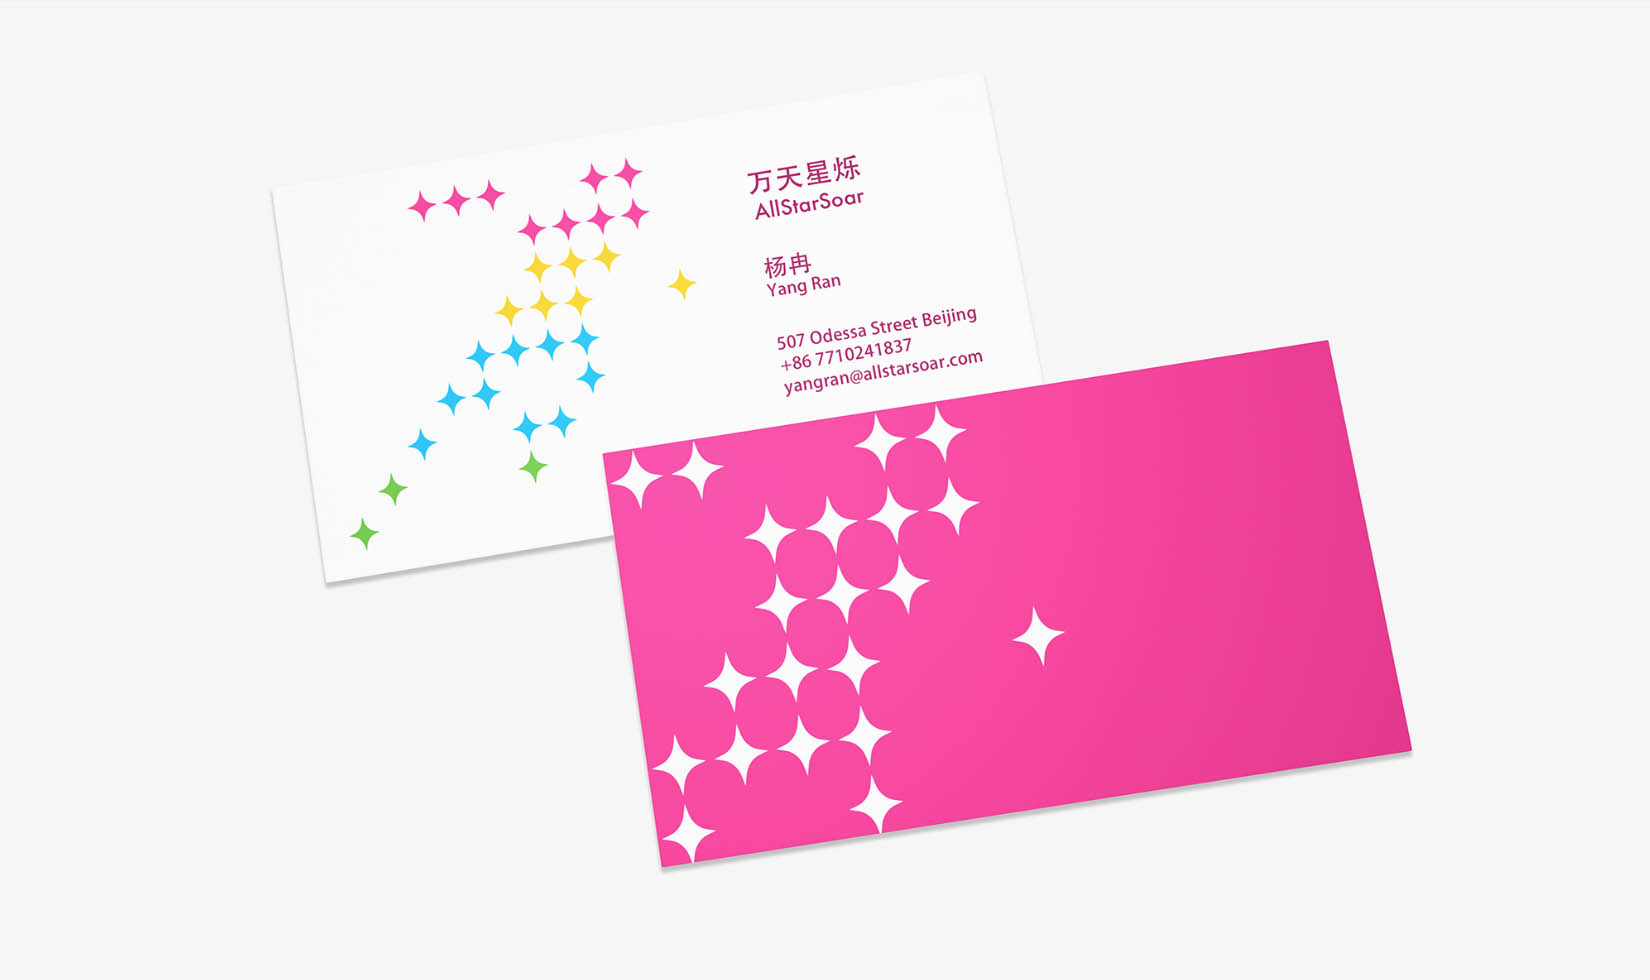 Stationery design for All Star Soar